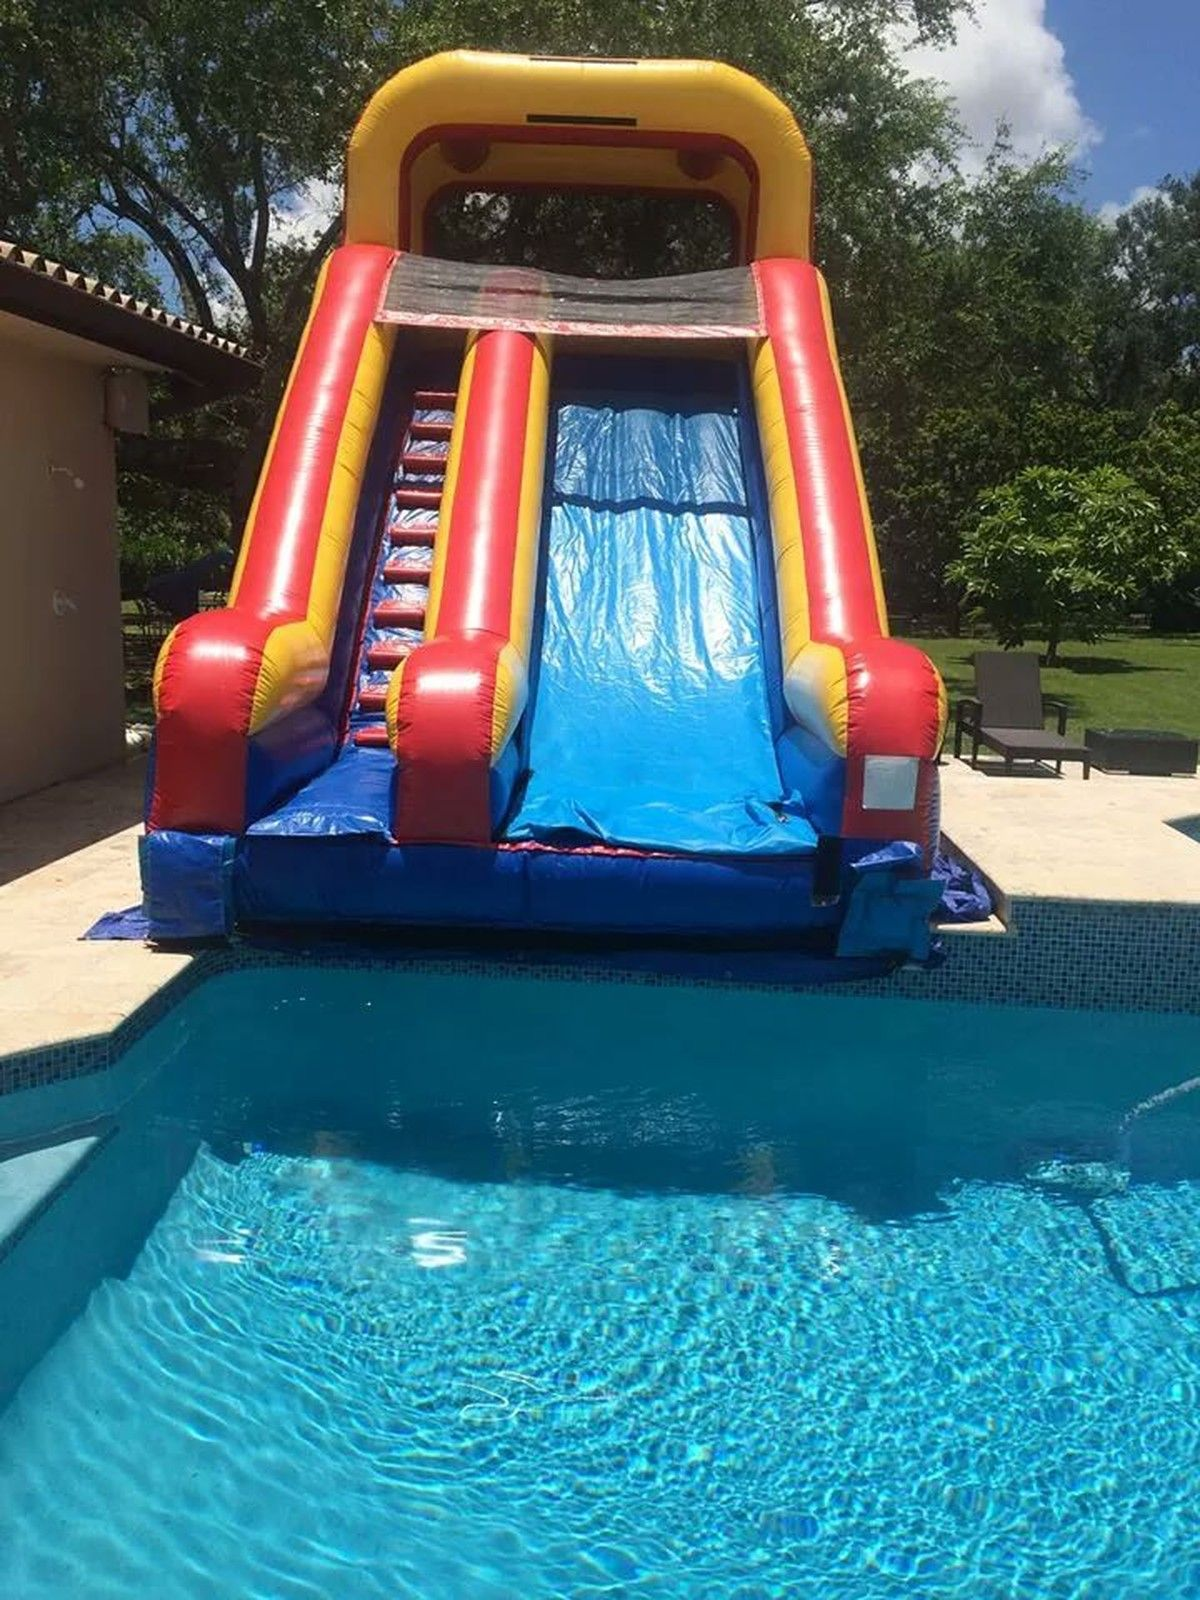 17 Feet High Slide Into The Pool House Pool Party Pool Floats Swimming Pool House